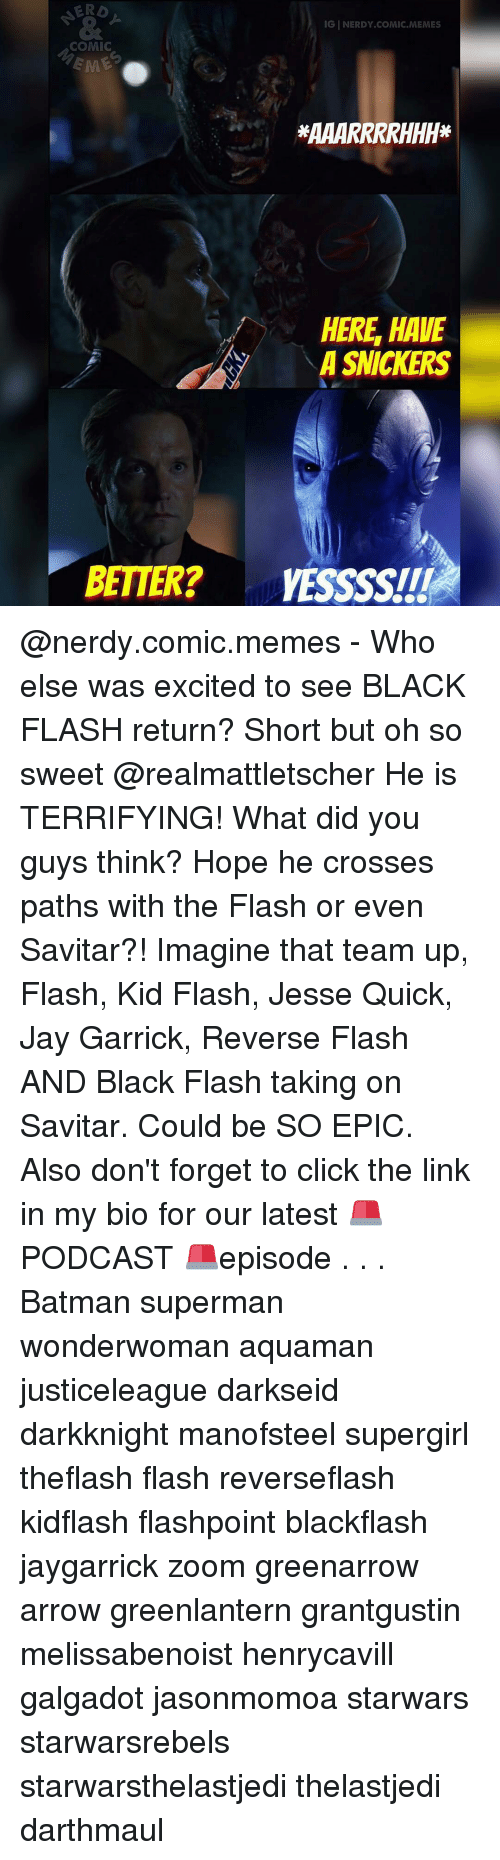 Memes, Zoom, and The Flash: IGINERDY COMIC MEMES  COMIC  HERE HAVE  A SNICKERS  BETTER? VESSSSITI @nerdy.comic.memes - Who else was excited to see BLACK FLASH return? Short but oh so sweet @realmattletscher He is TERRIFYING! What did you guys think? Hope he crosses paths with the Flash or even Savitar?! Imagine that team up, Flash, Kid Flash, Jesse Quick, Jay Garrick, Reverse Flash AND Black Flash taking on Savitar. Could be SO EPIC. Also don't forget to click the link in my bio for our latest 🚨PODCAST 🚨episode . . . Batman superman wonderwoman aquaman justiceleague darkseid darkknight manofsteel supergirl theflash flash reverseflash kidflash flashpoint blackflash jaygarrick zoom greenarrow arrow greenlantern grantgustin melissabenoist henrycavill galgadot jasonmomoa starwars starwarsrebels starwarsthelastjedi thelastjedi darthmaul